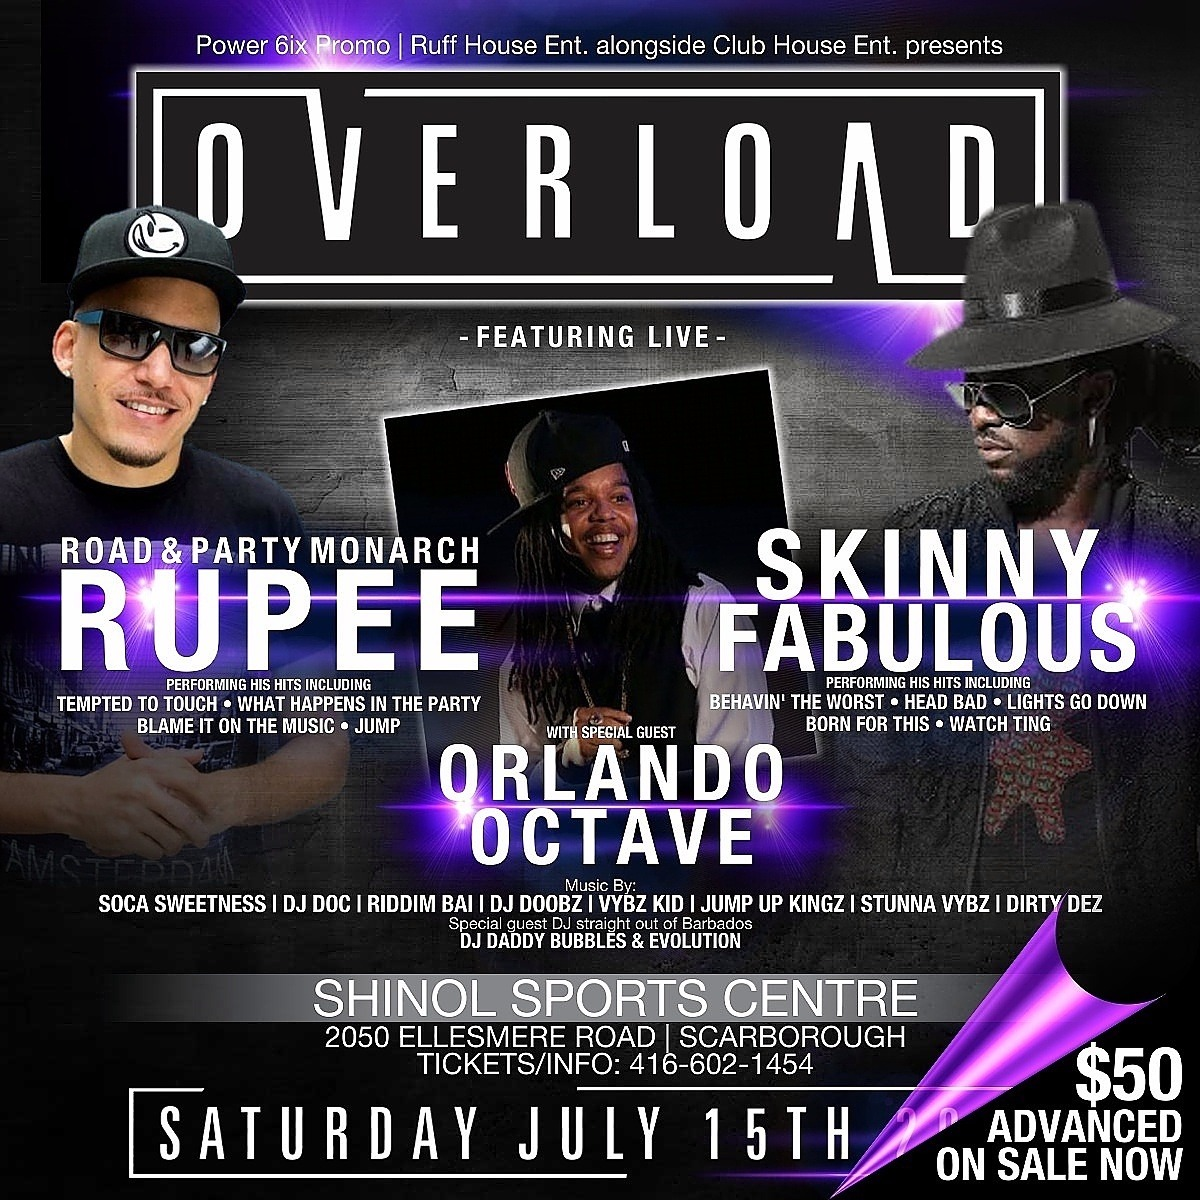 OVERLOAD | Live Entertainment FT.  RUPEE | SKINNY FABULOUS | ORLANDO OCTAVE